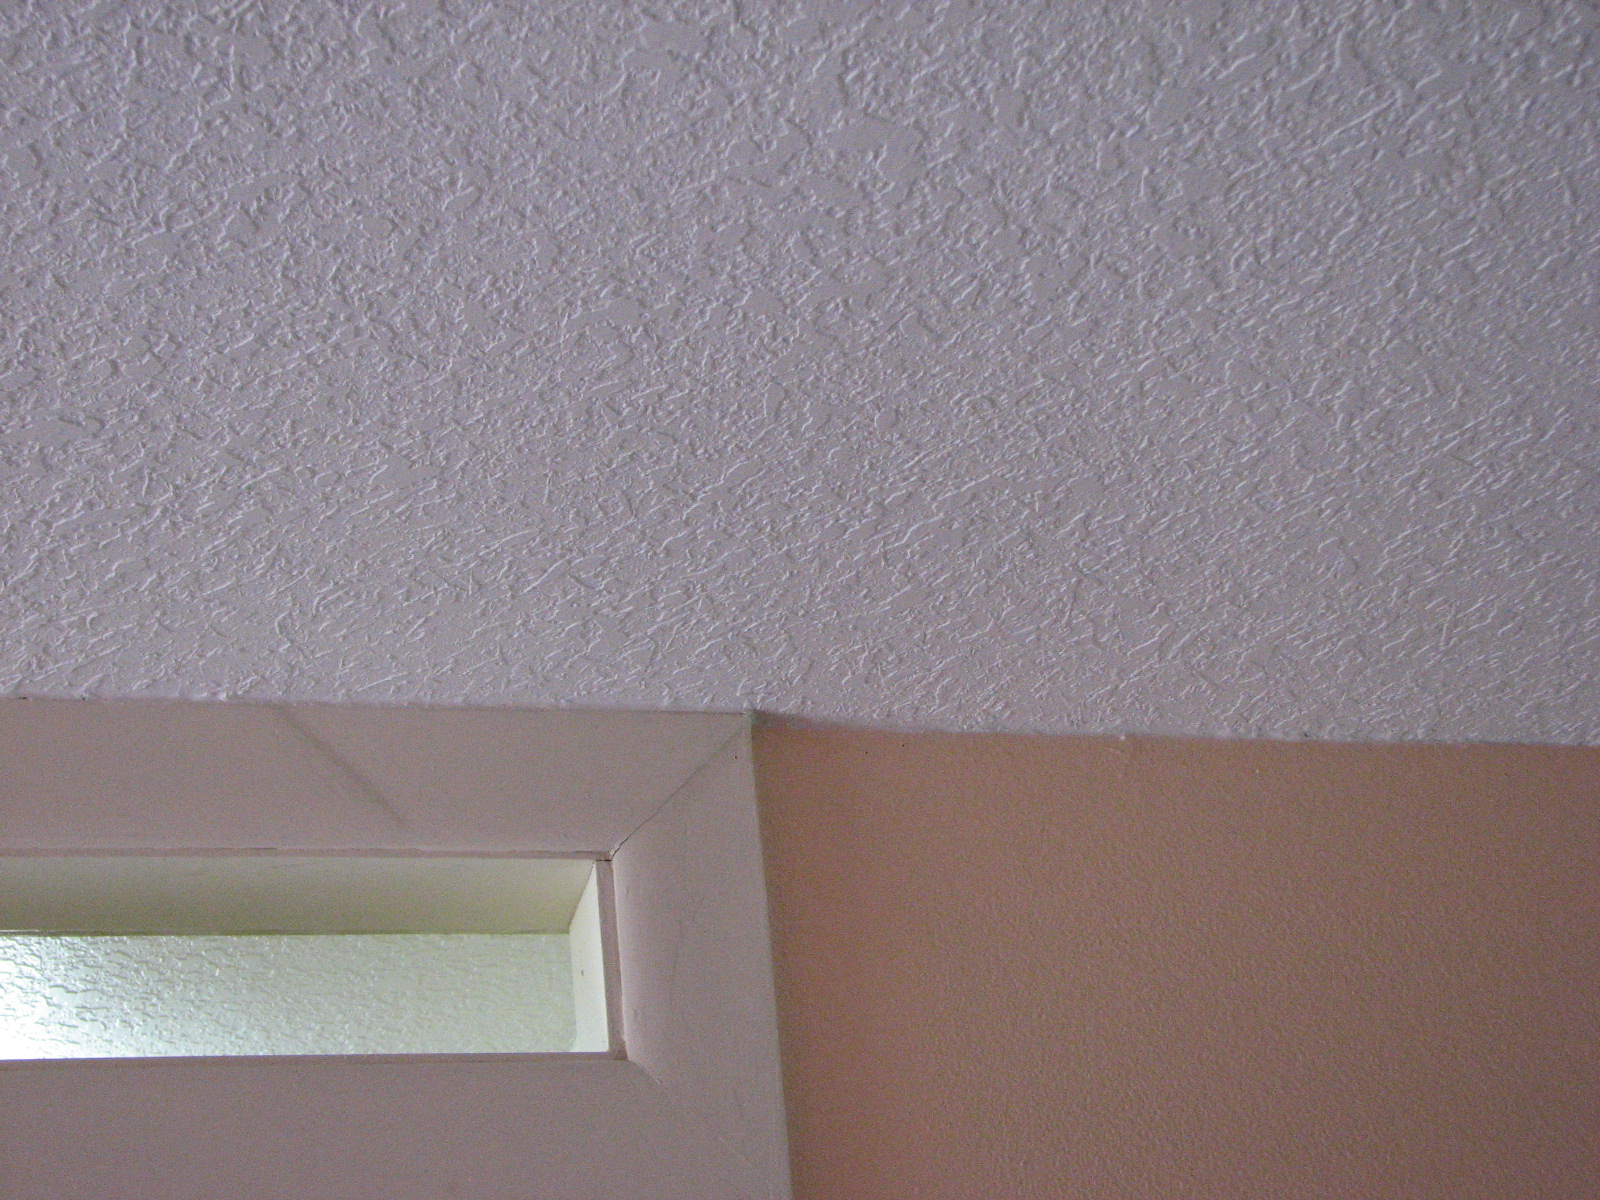 Popcorn Ceiling Repaired Removed And Textured Knockdown